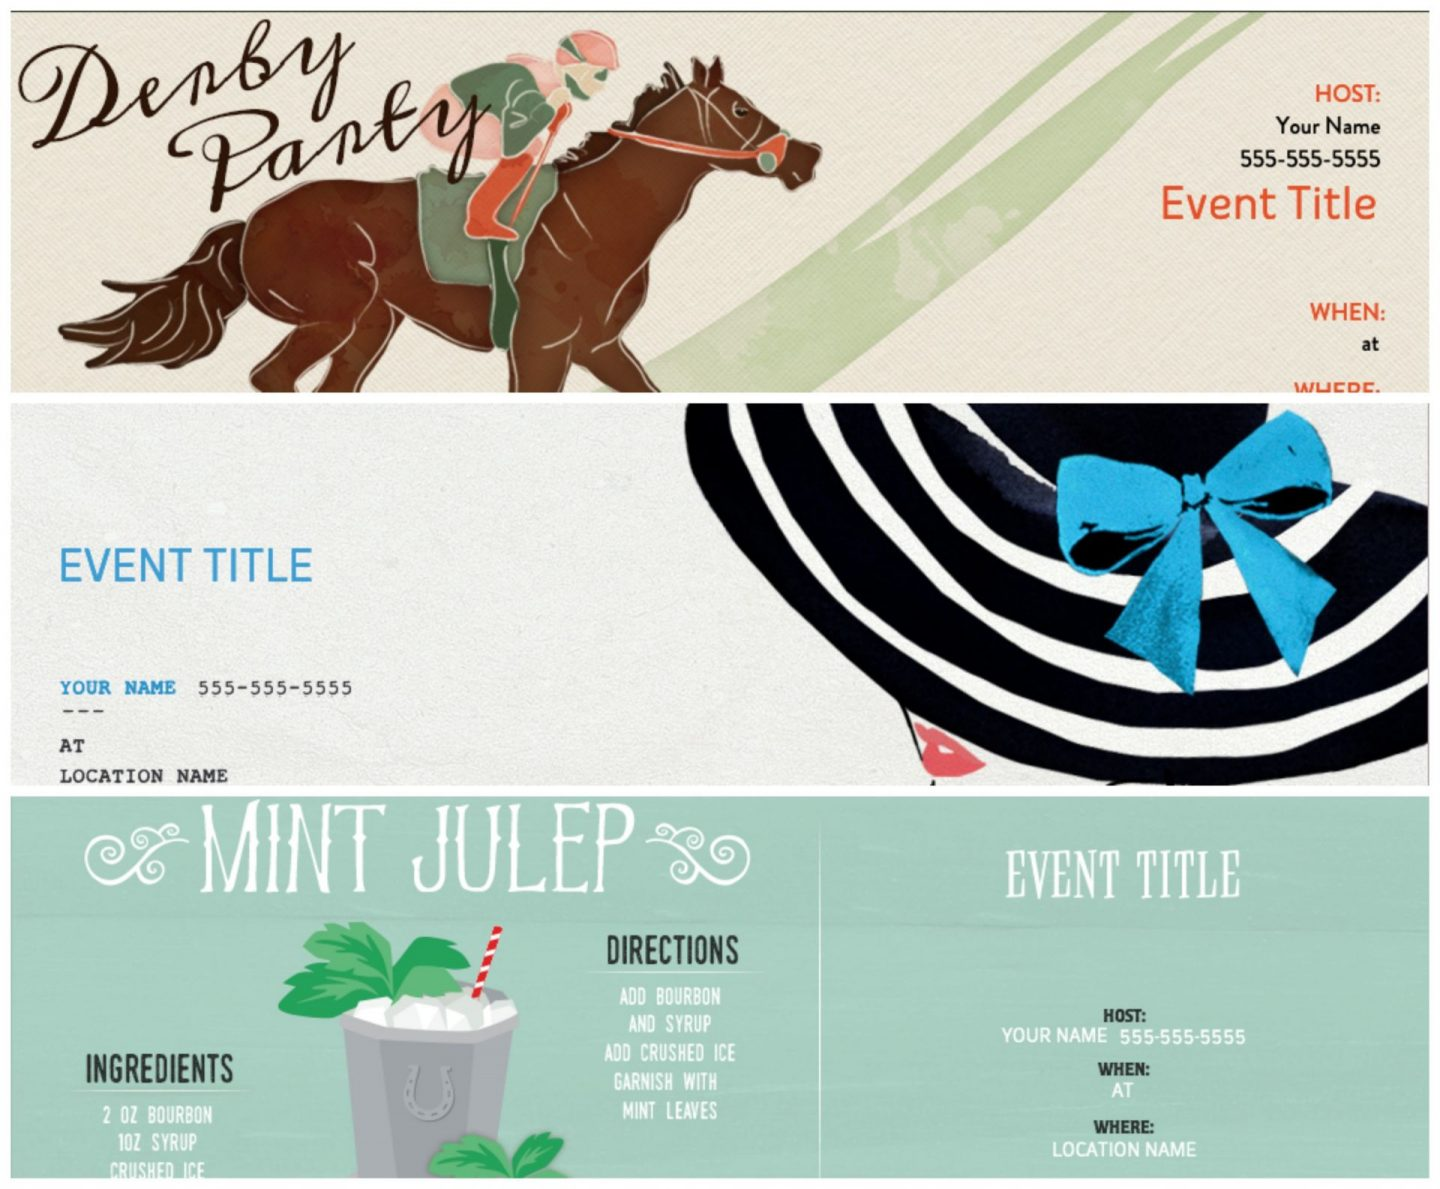 Virtual Derby Party Invitations